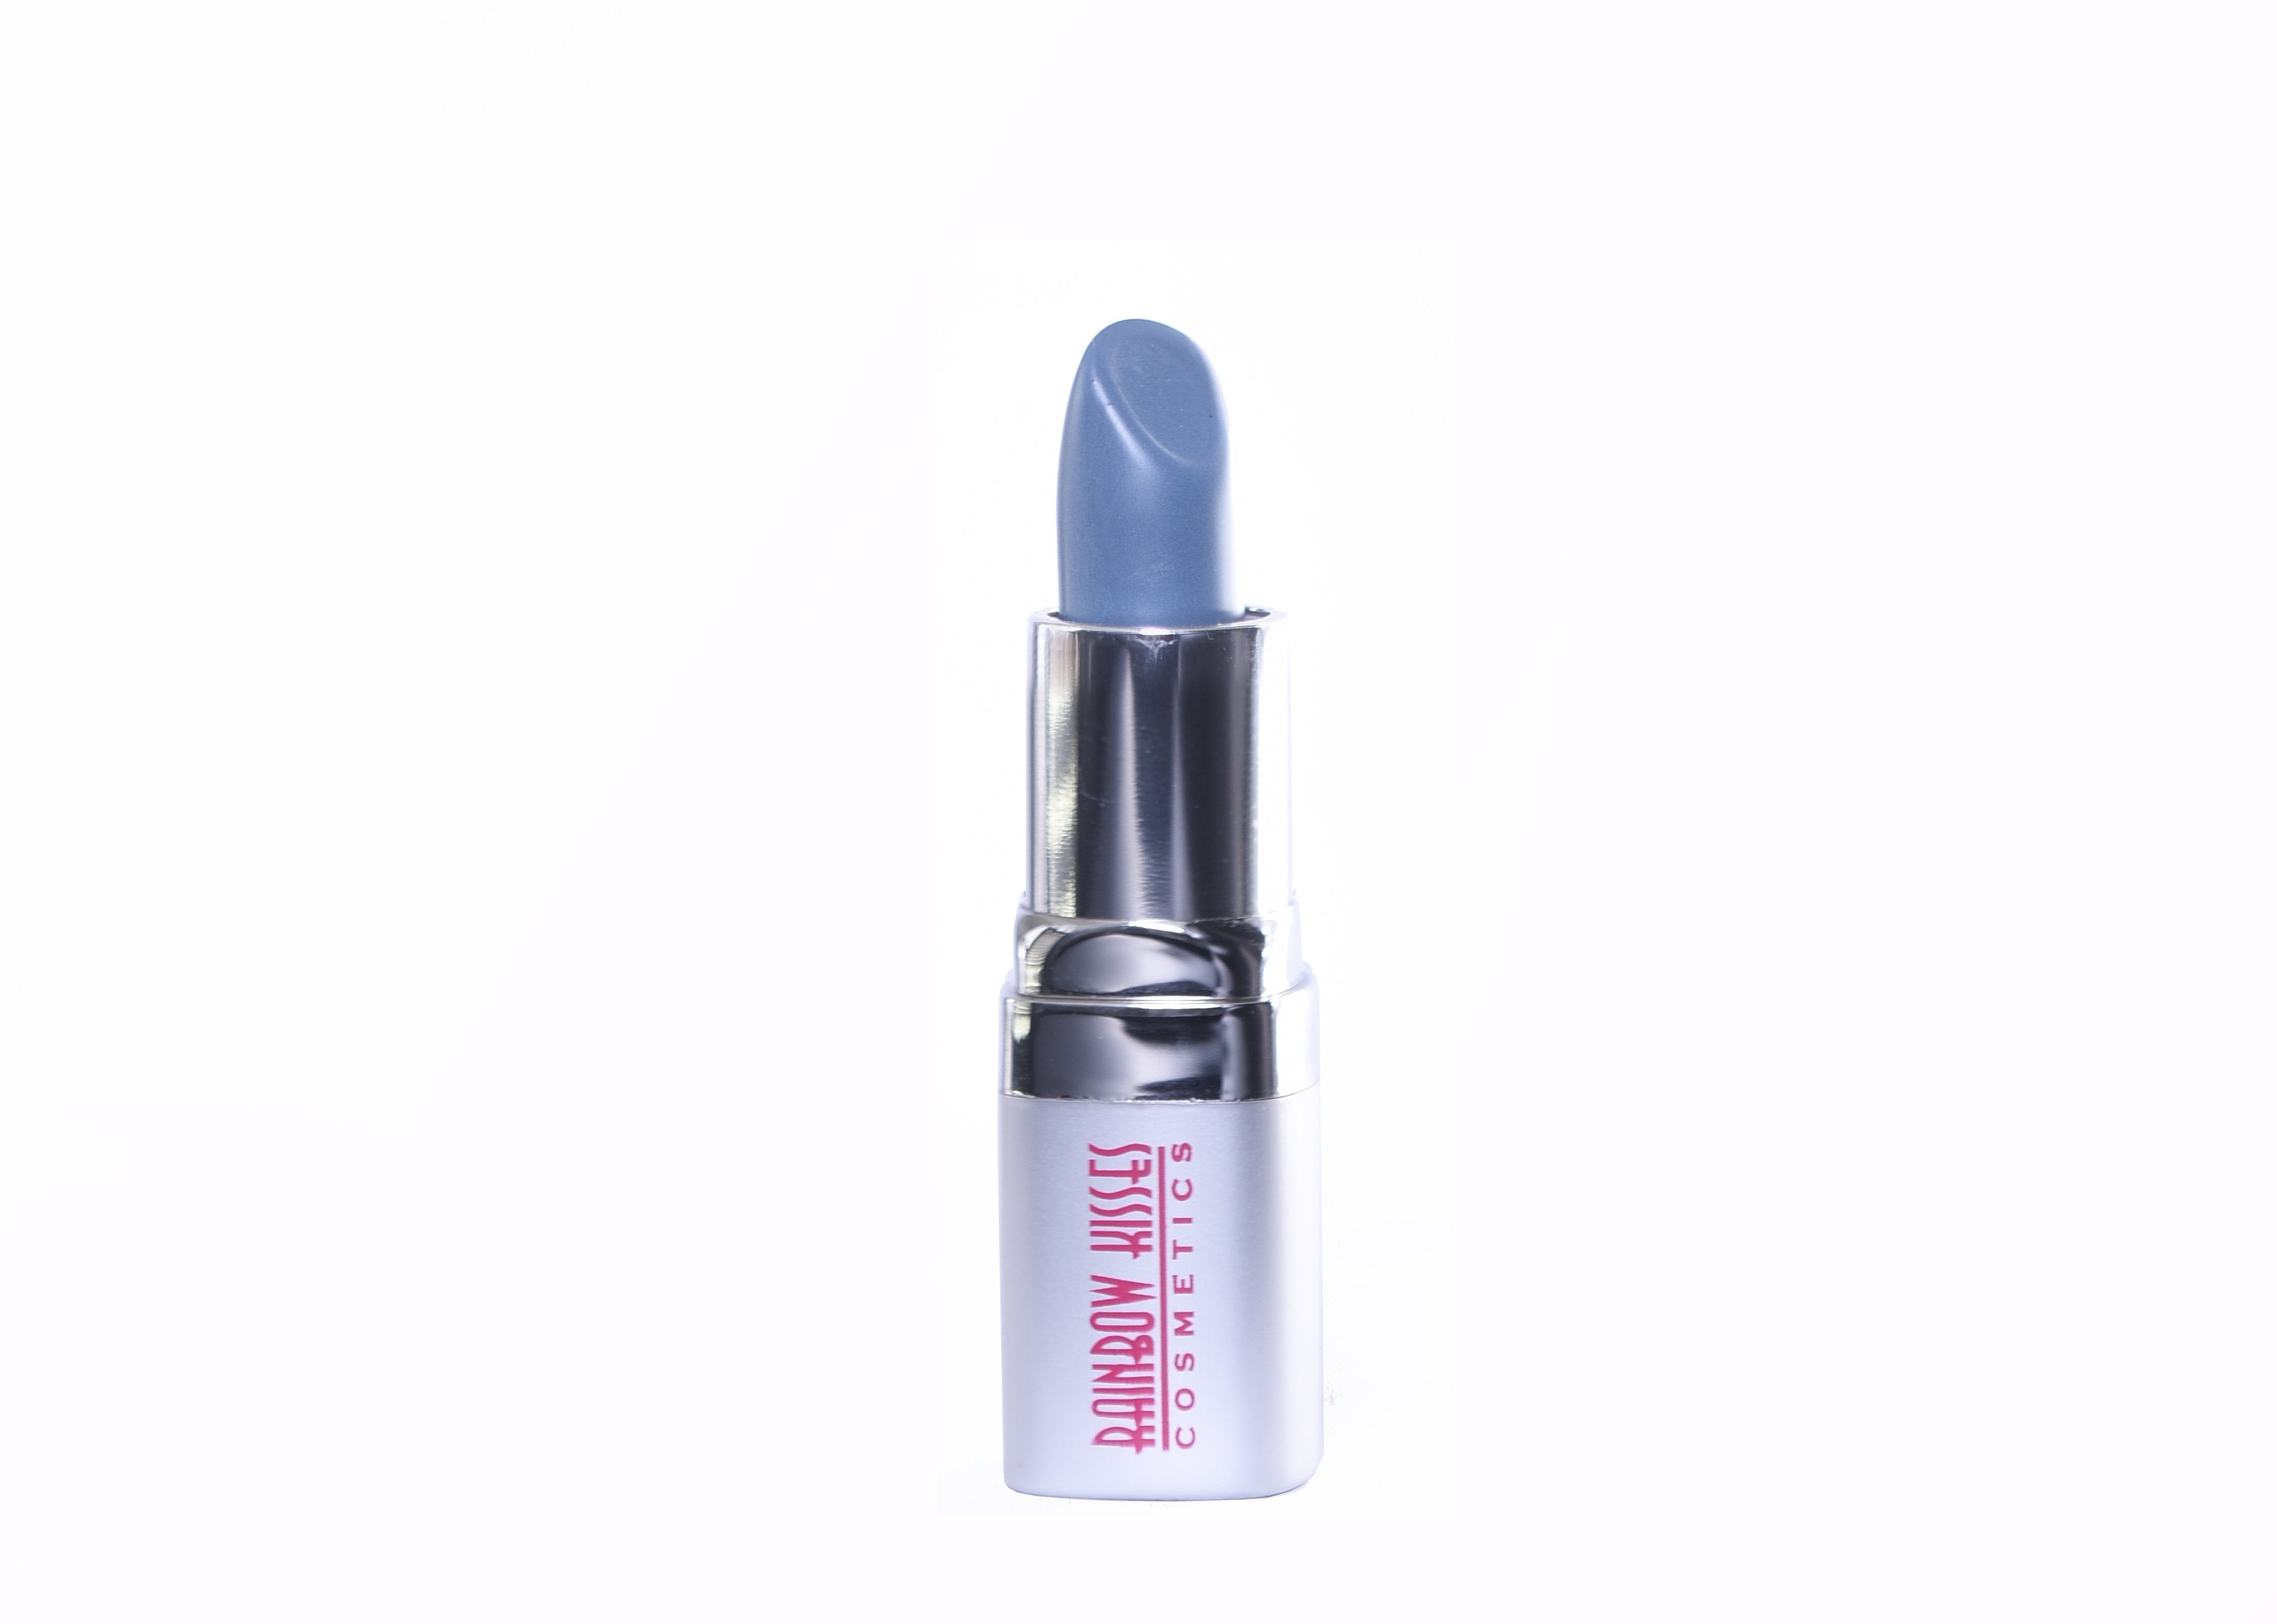 STORM KISS, Matte Lipstick,Rainbow Kisses Cosmetics, bold, highly pigmented , gluten free, paraben free